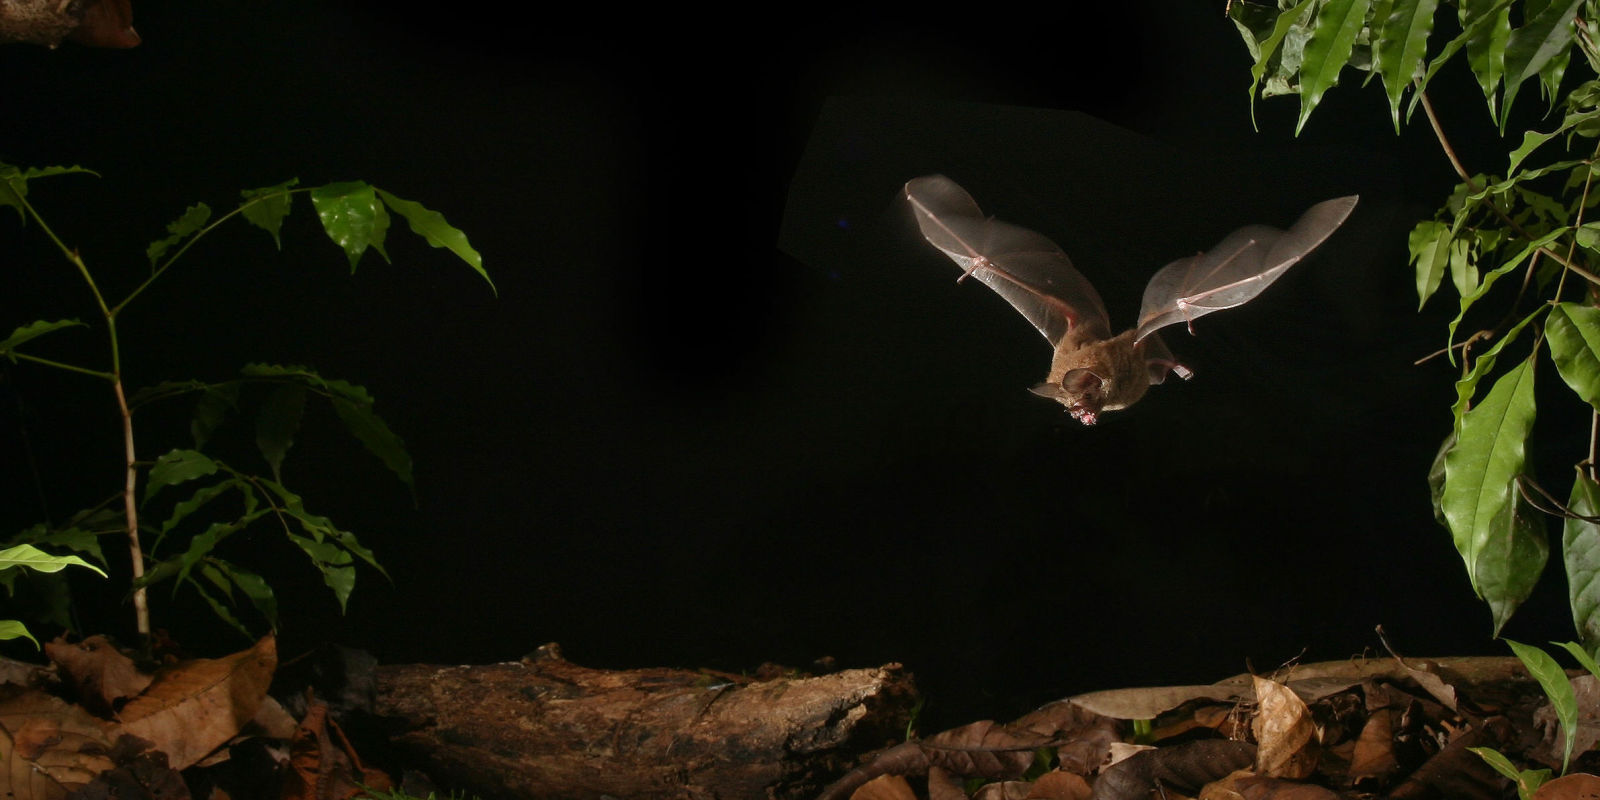 humans too loud? bats adjust image